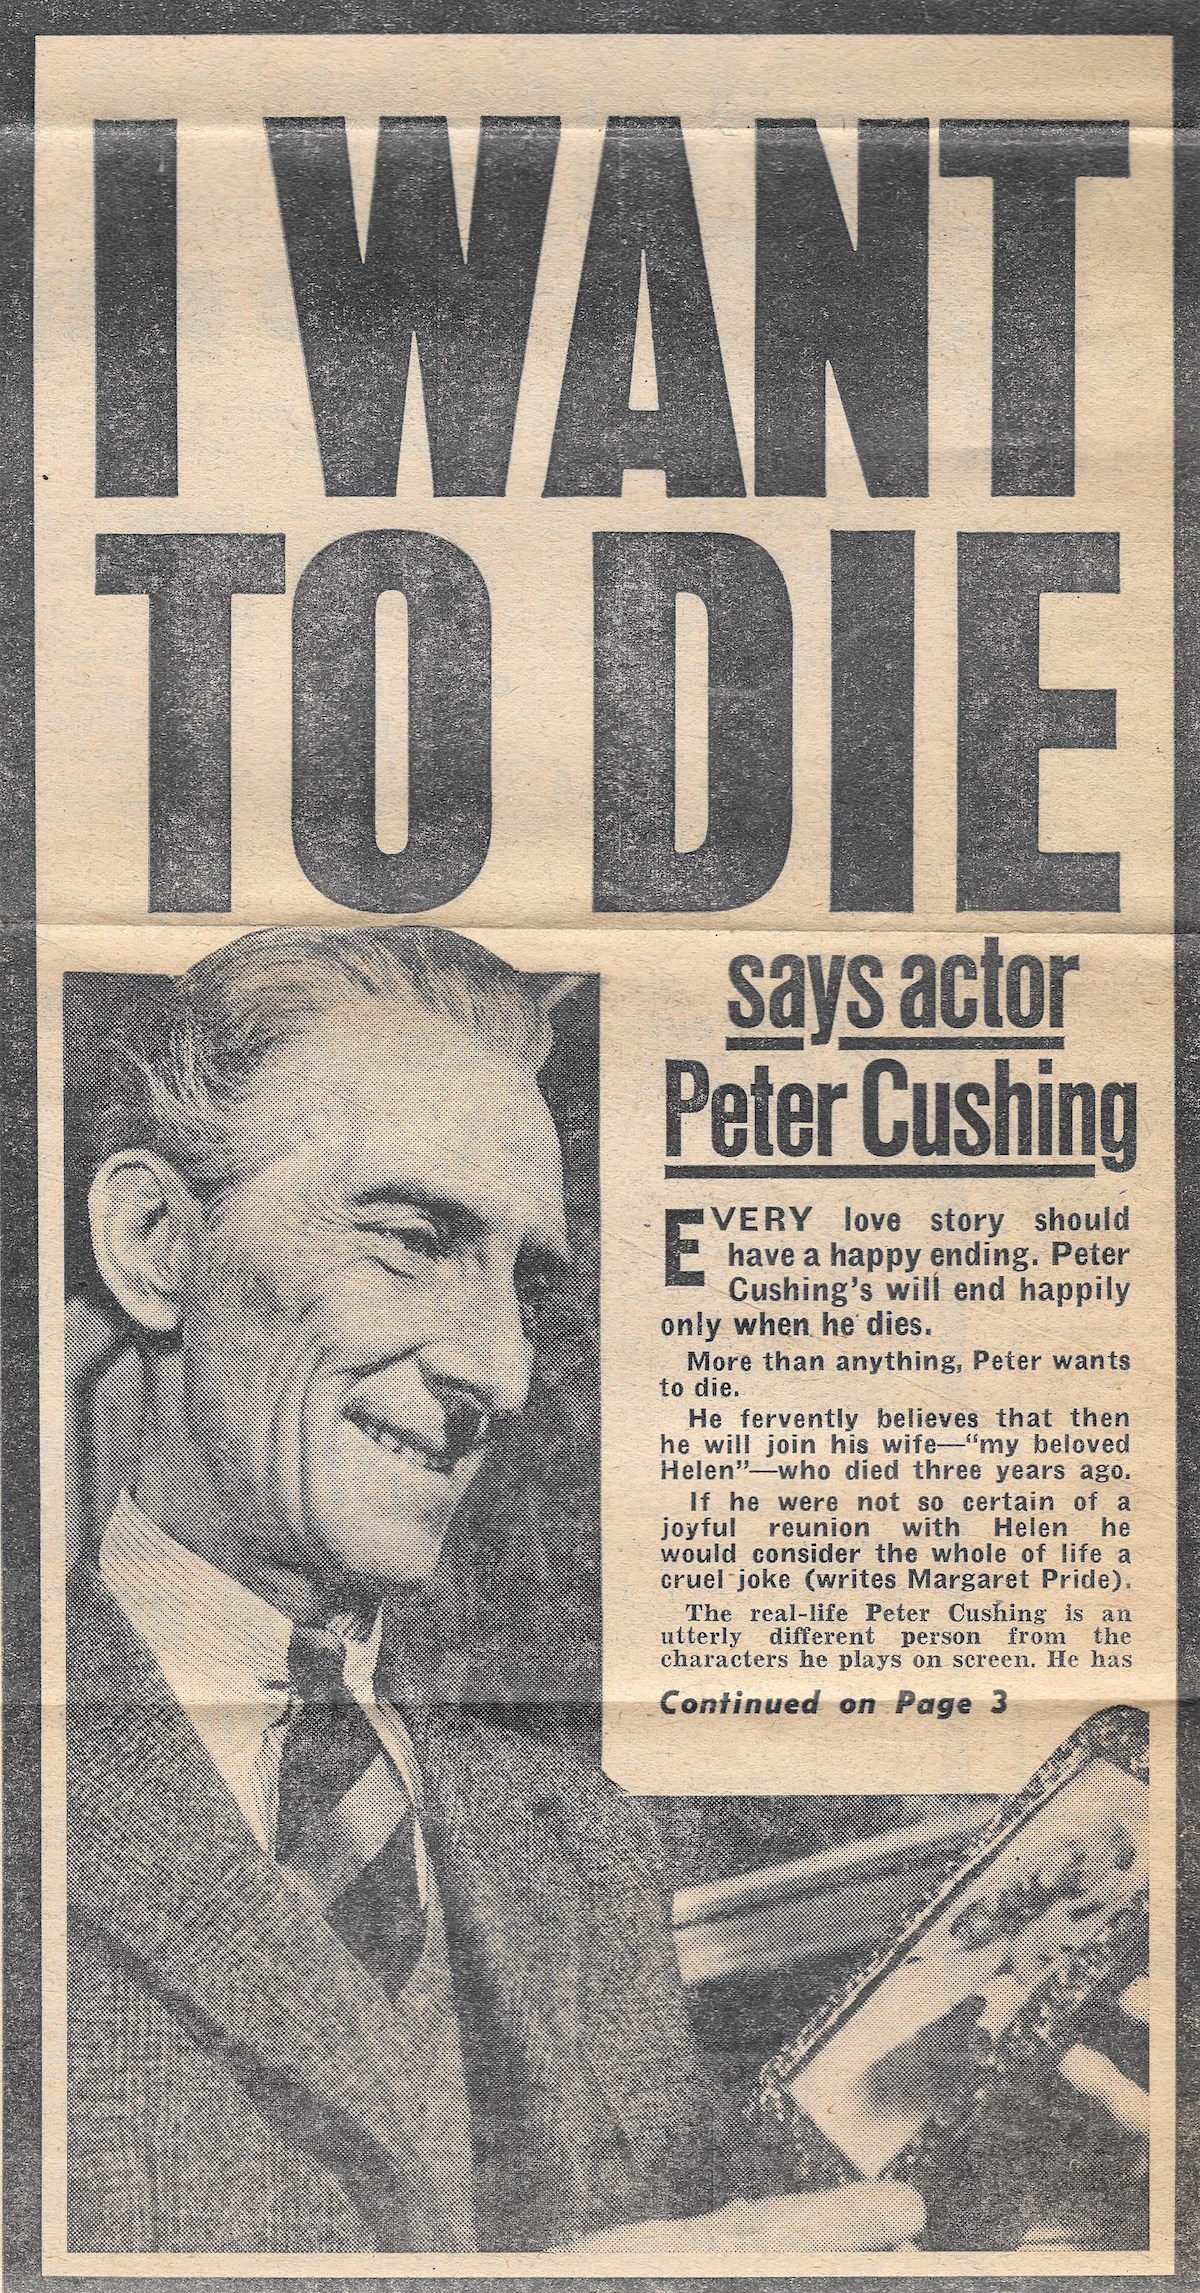 Peter Cushing, newspaper, Reveille